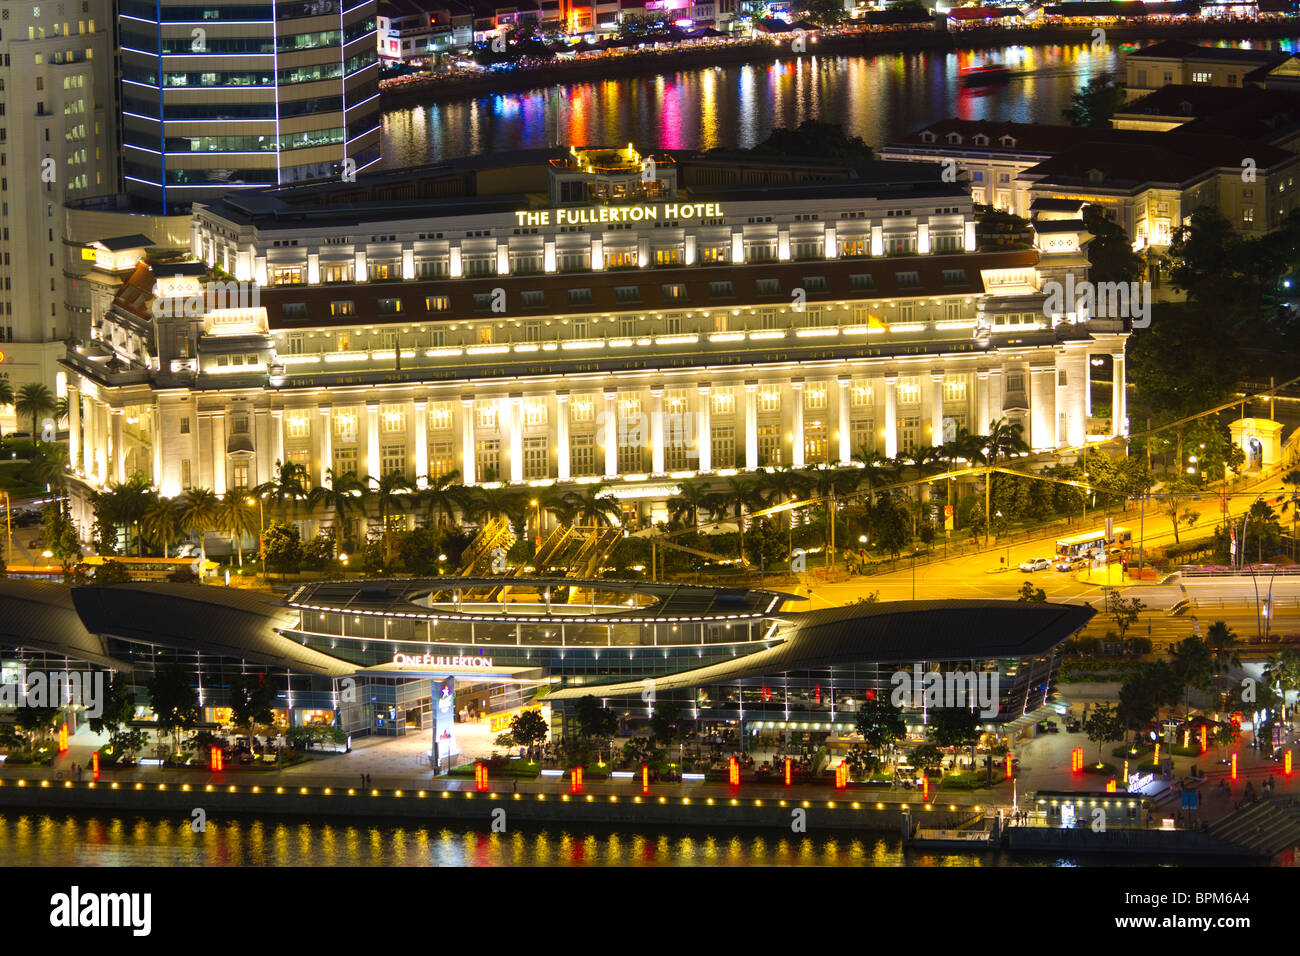 exterior of the Fullerton Hotel Singapore, at night - Stock Image